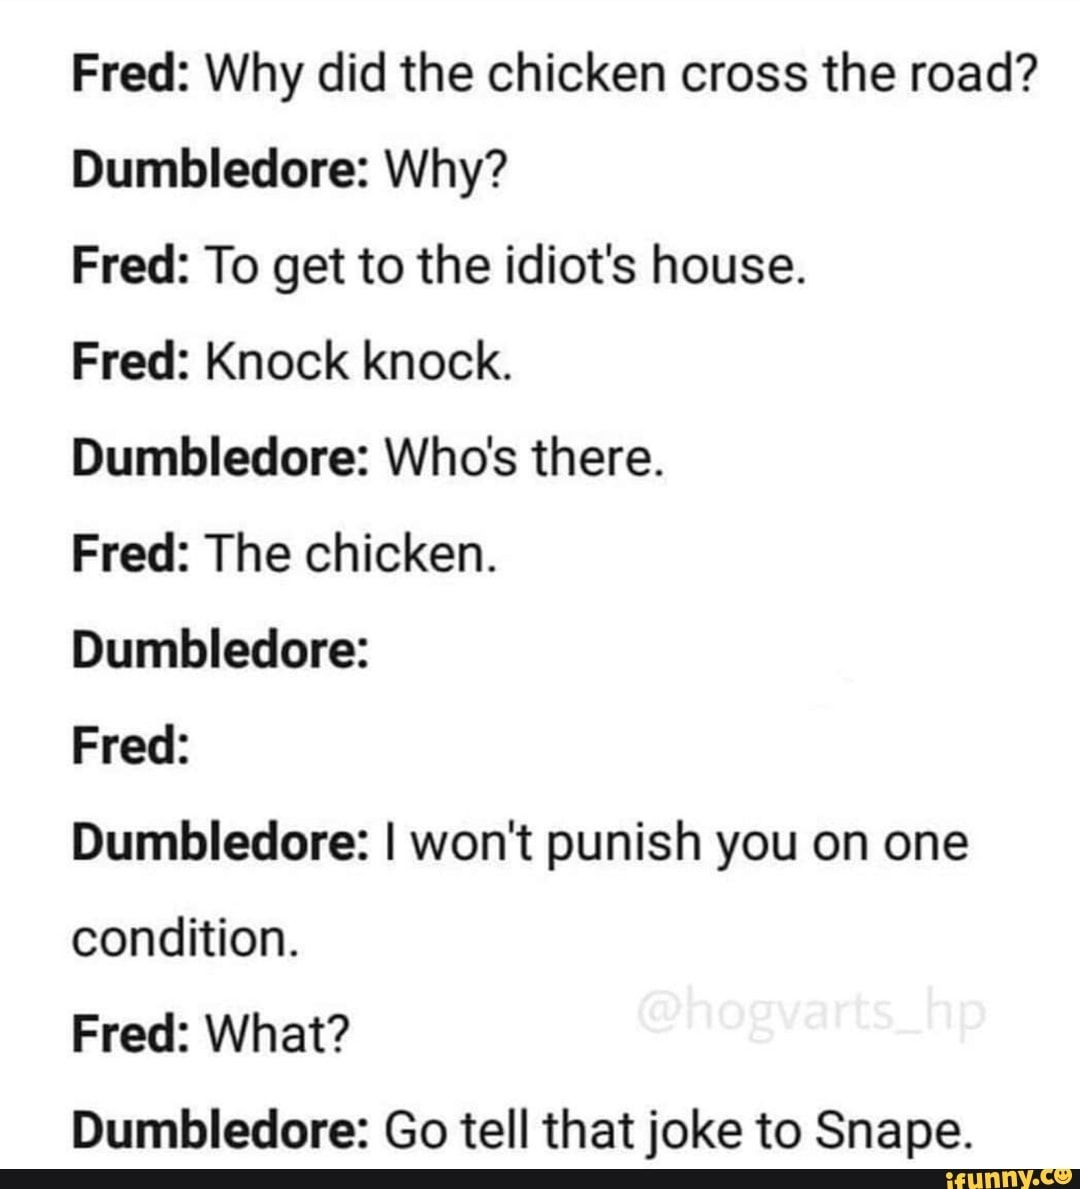 Fred: Why did the chicken cross the road? Dumbledore: Why? Fred: To get to the idiot's house. Dumbledore: Who's there. Fred: The chicken. Dumbledore: Fred: Dumbledore: I won't punish you on one condition. Fred: What? Dumbledore: Go tell